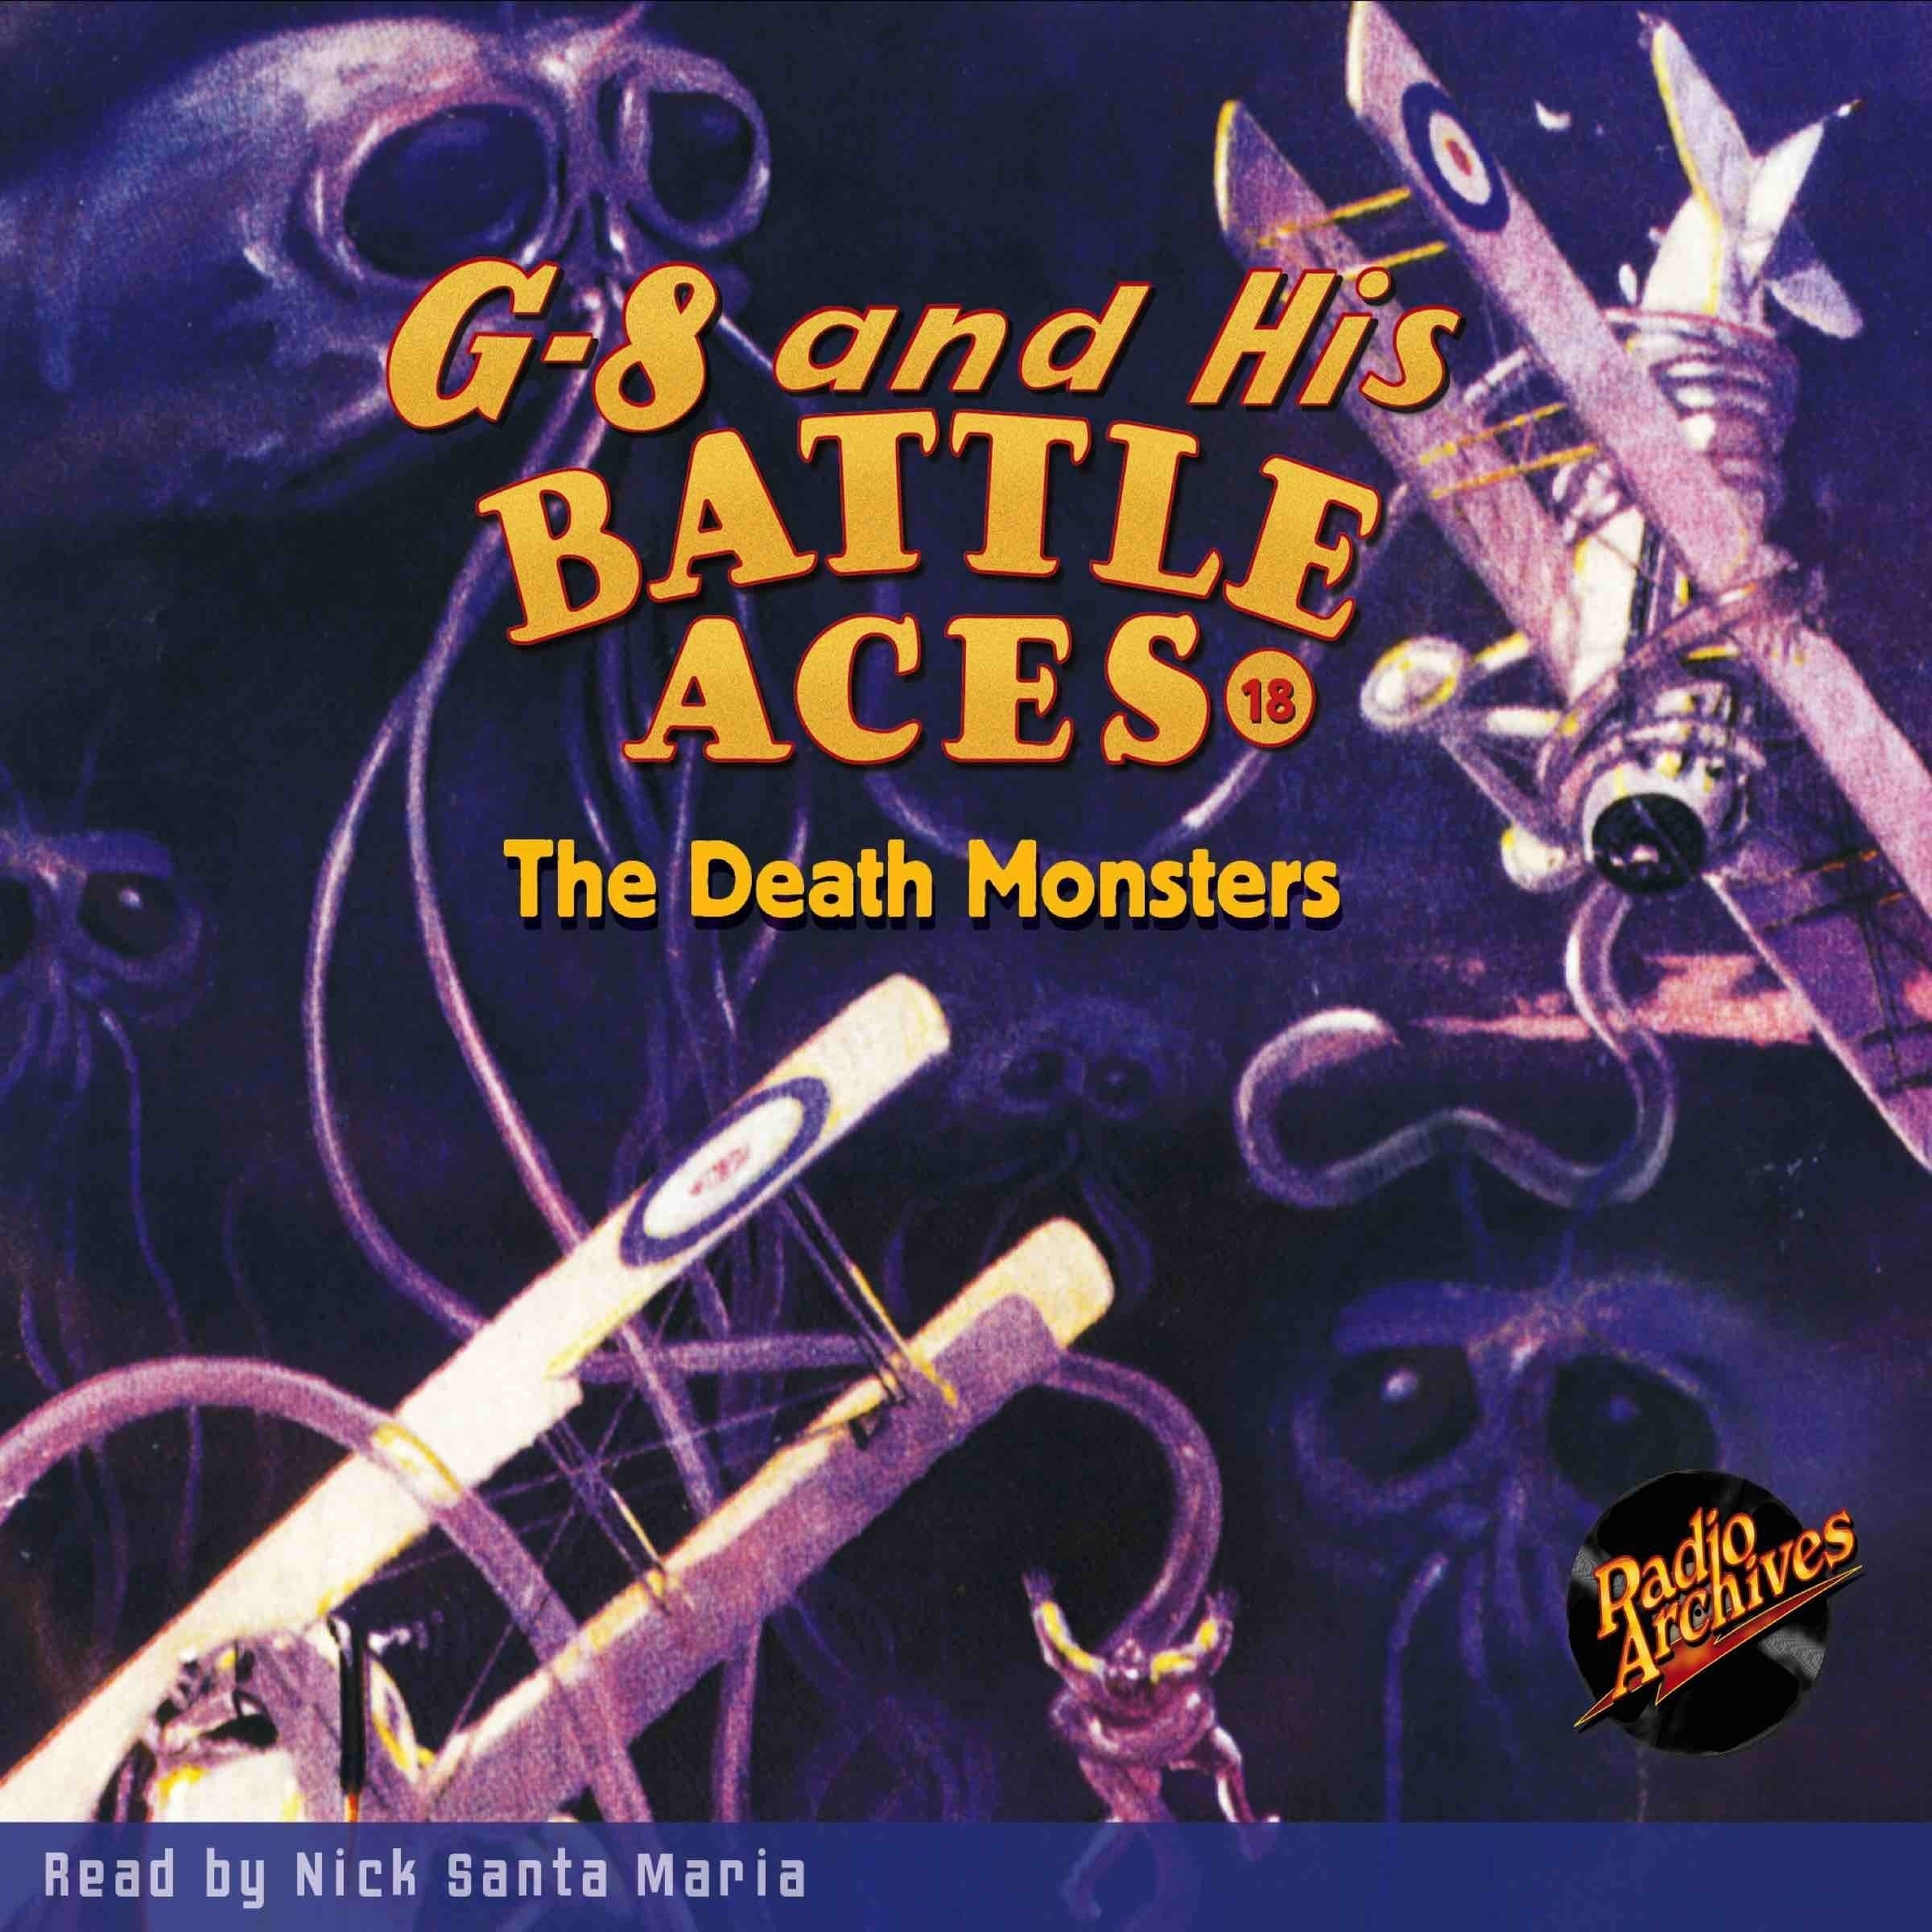 Printable G-8 and His Battle Aces #18: The Death Monsters Audiobook Cover Art